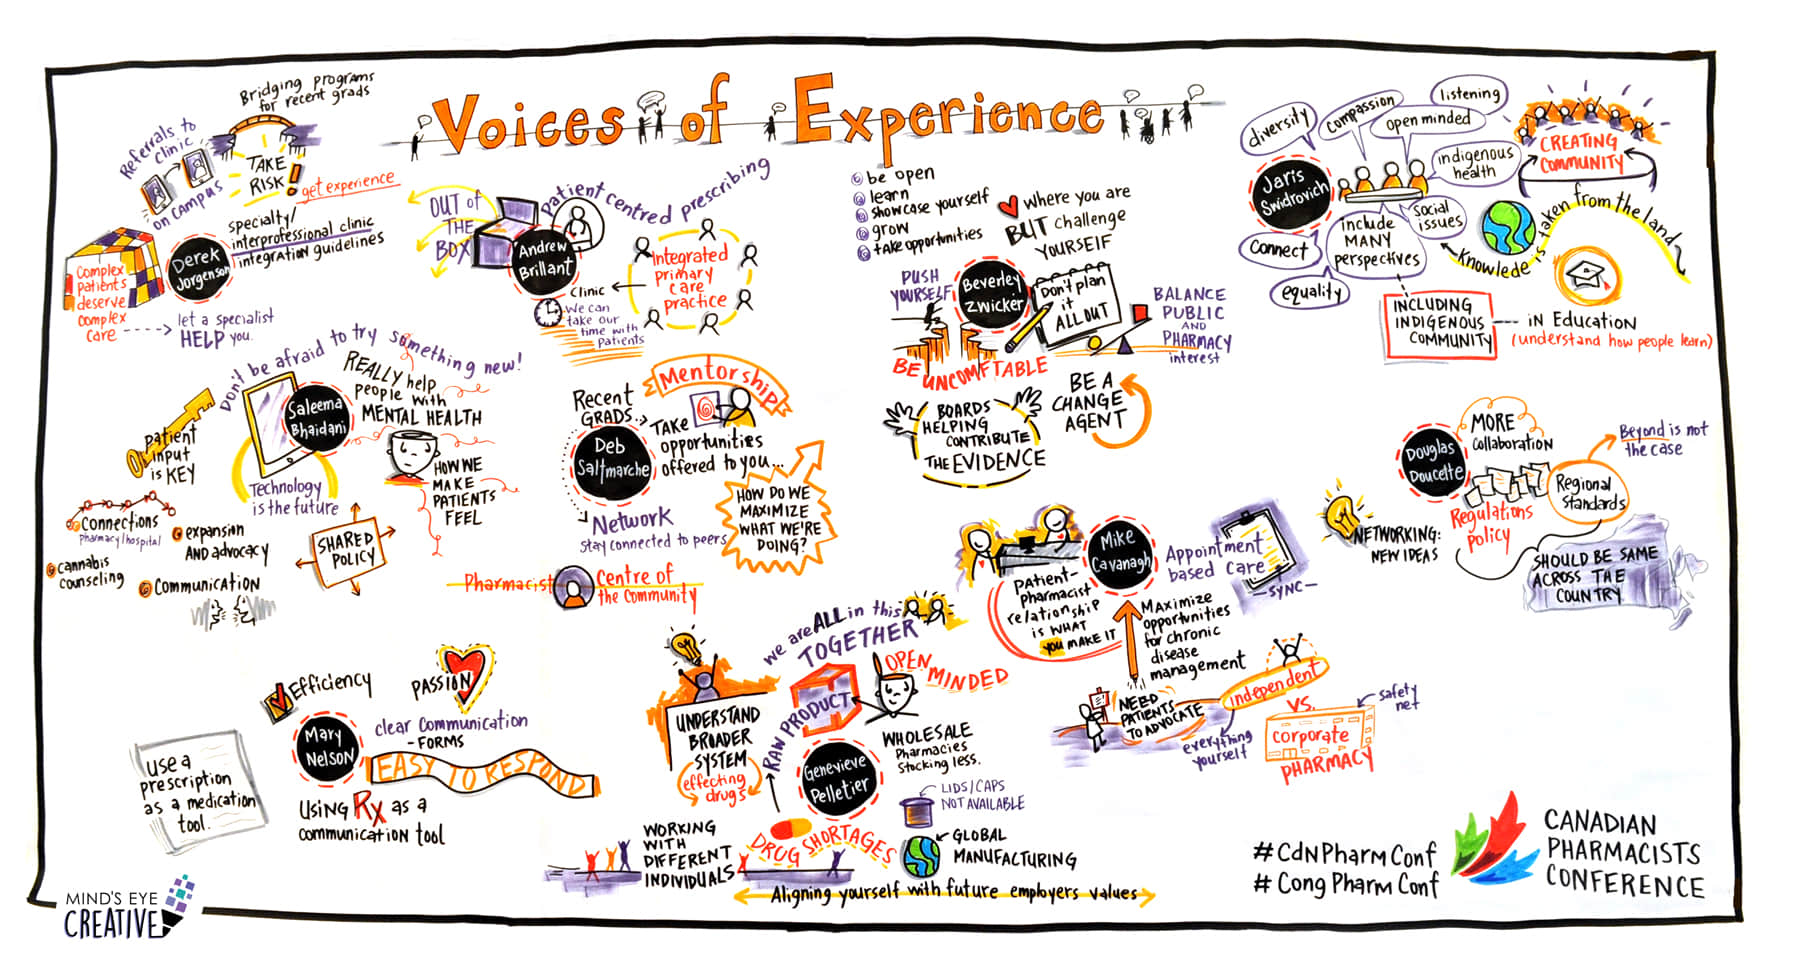 Voices of Experience at Canadian Pharmacists conference